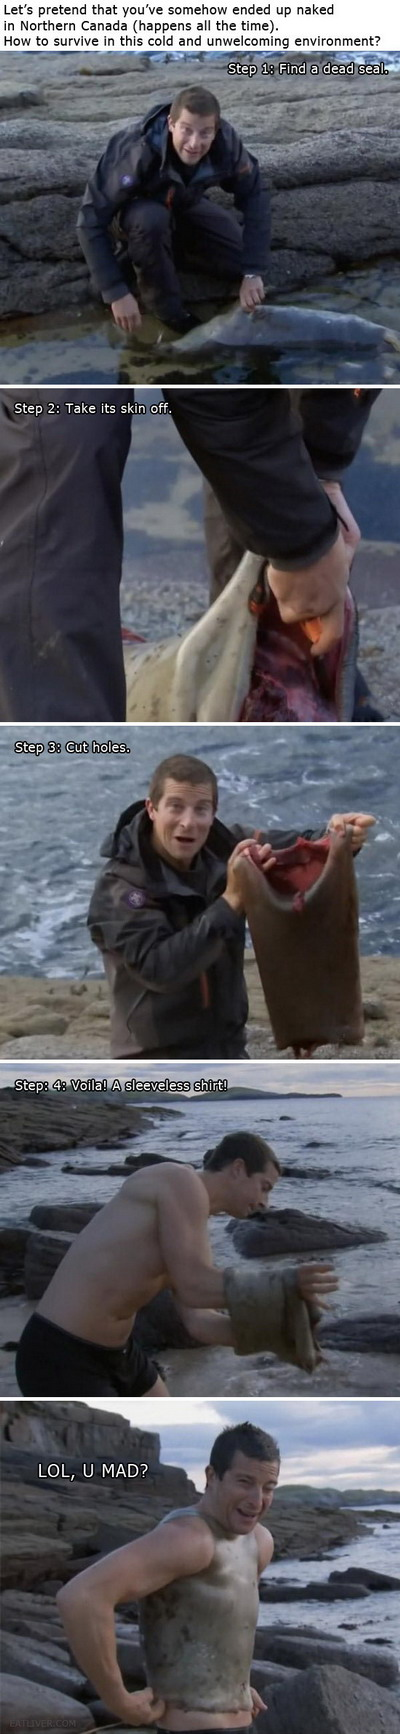 Funny Survival tip from Bear Grylls : Man Vs Wild